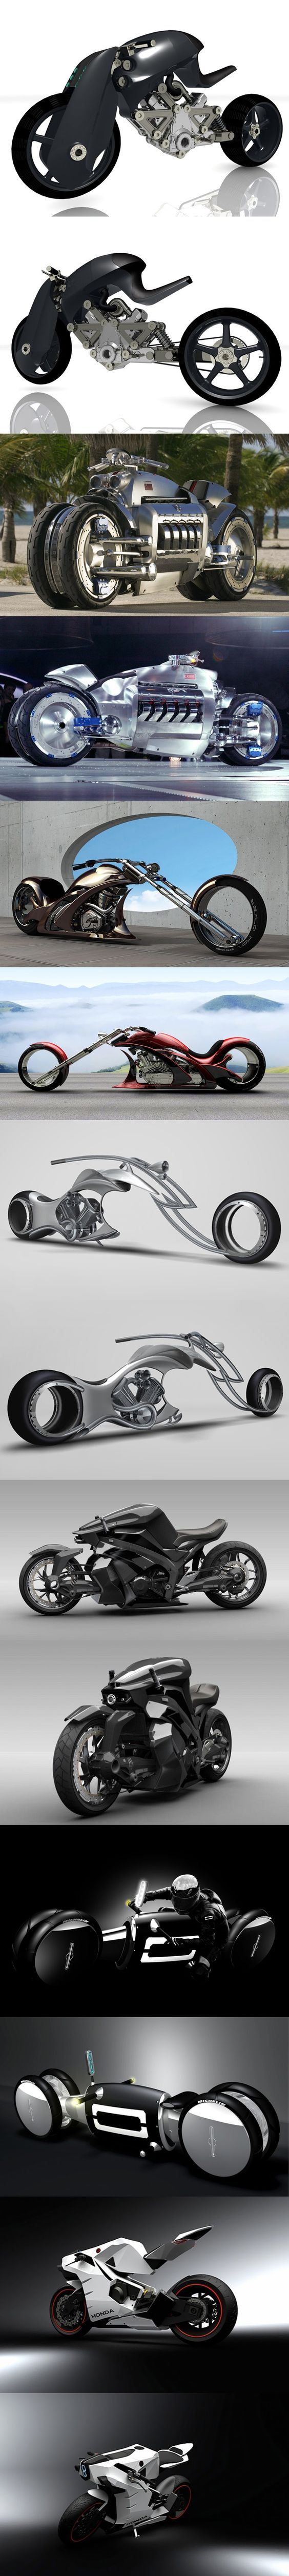 Concept Motorcycles: Motos Power Bikes, Bikes Posted, Concept Bikes, Custom Motorcycles, Motorcycle Design, Badass Bikes, Concept Motorcycles, Bicycle Motorcyle Tryke, Motorcycles Exotic888Imports